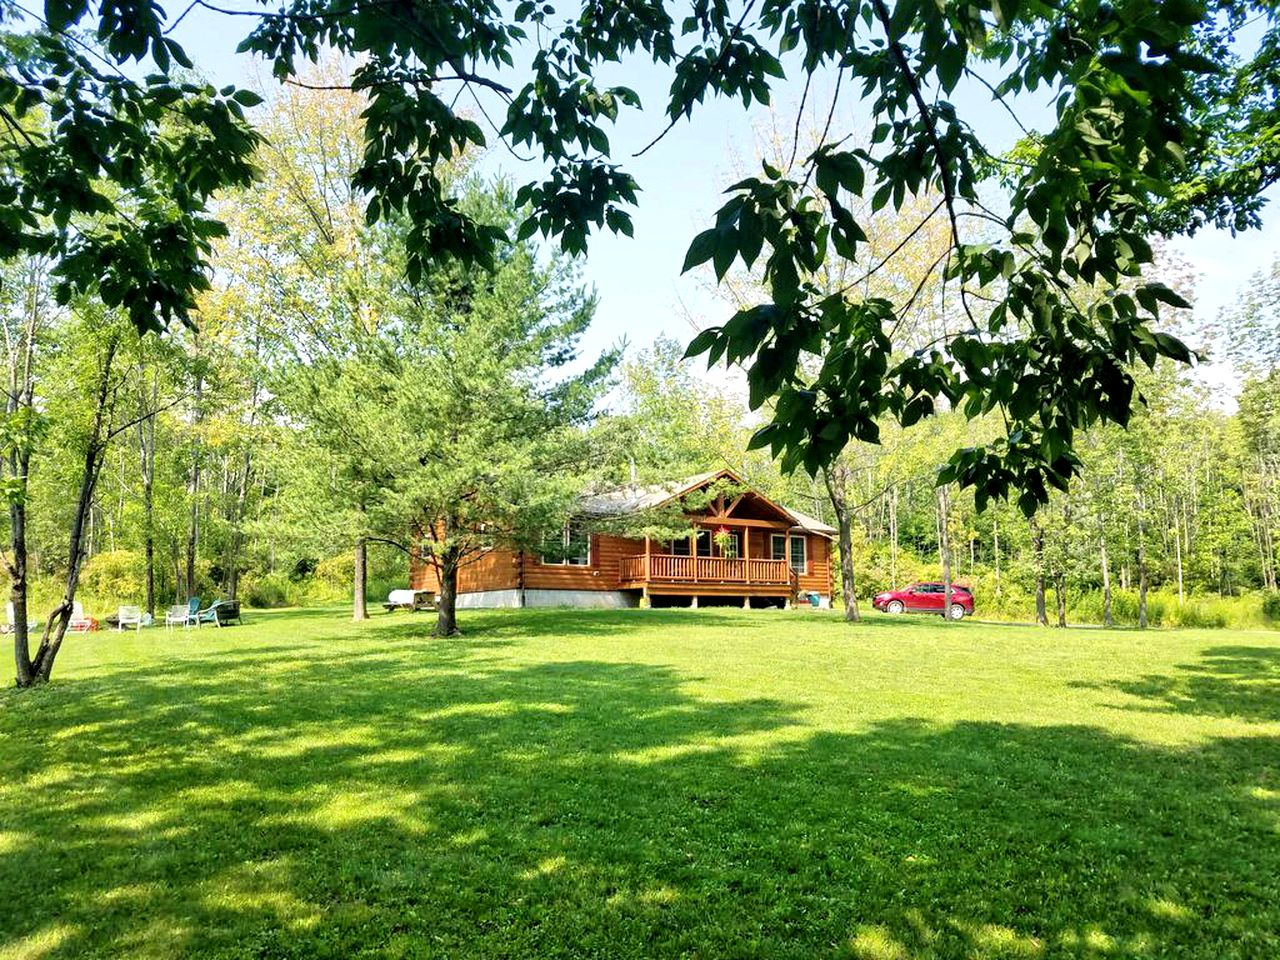 Cabins (Branchport, New York, United States)